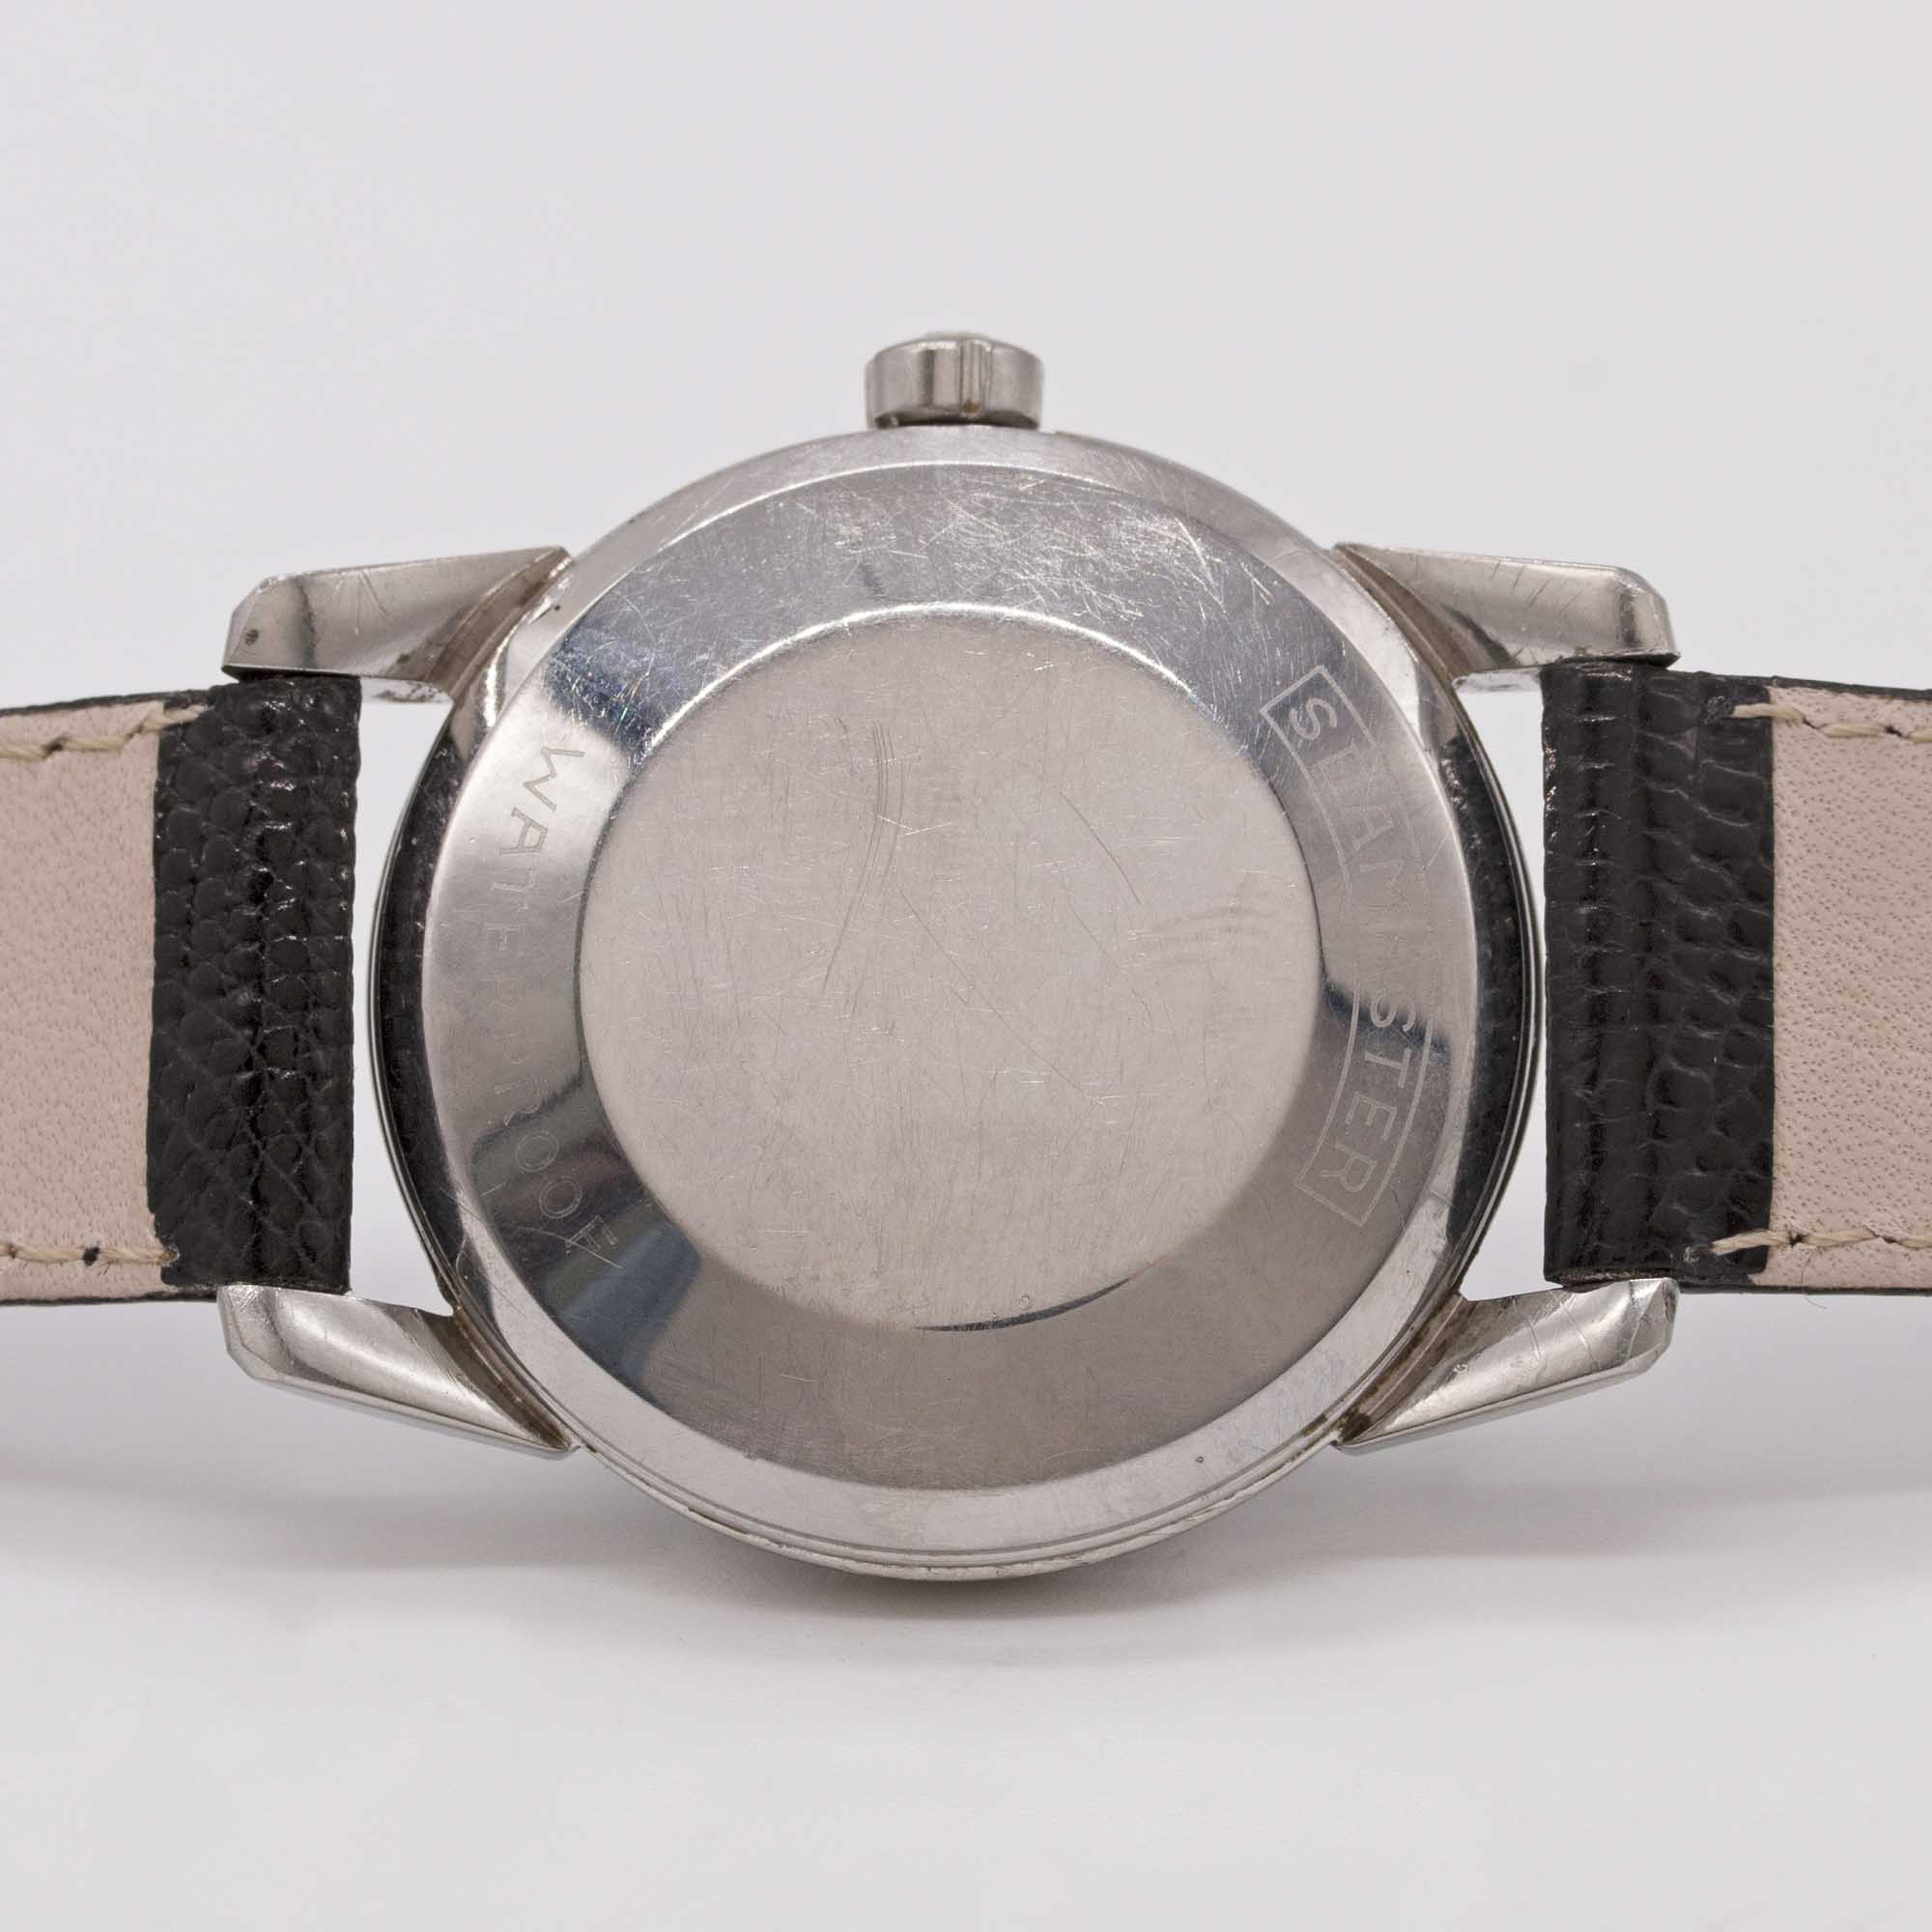 Lot 17 - A GENTLEMAN'S STAINLESS STEEL OMEGA SEAMASTER AUTOMATIC WRIST WATCH CIRCA 1956, REF. 2846 / 2848 6